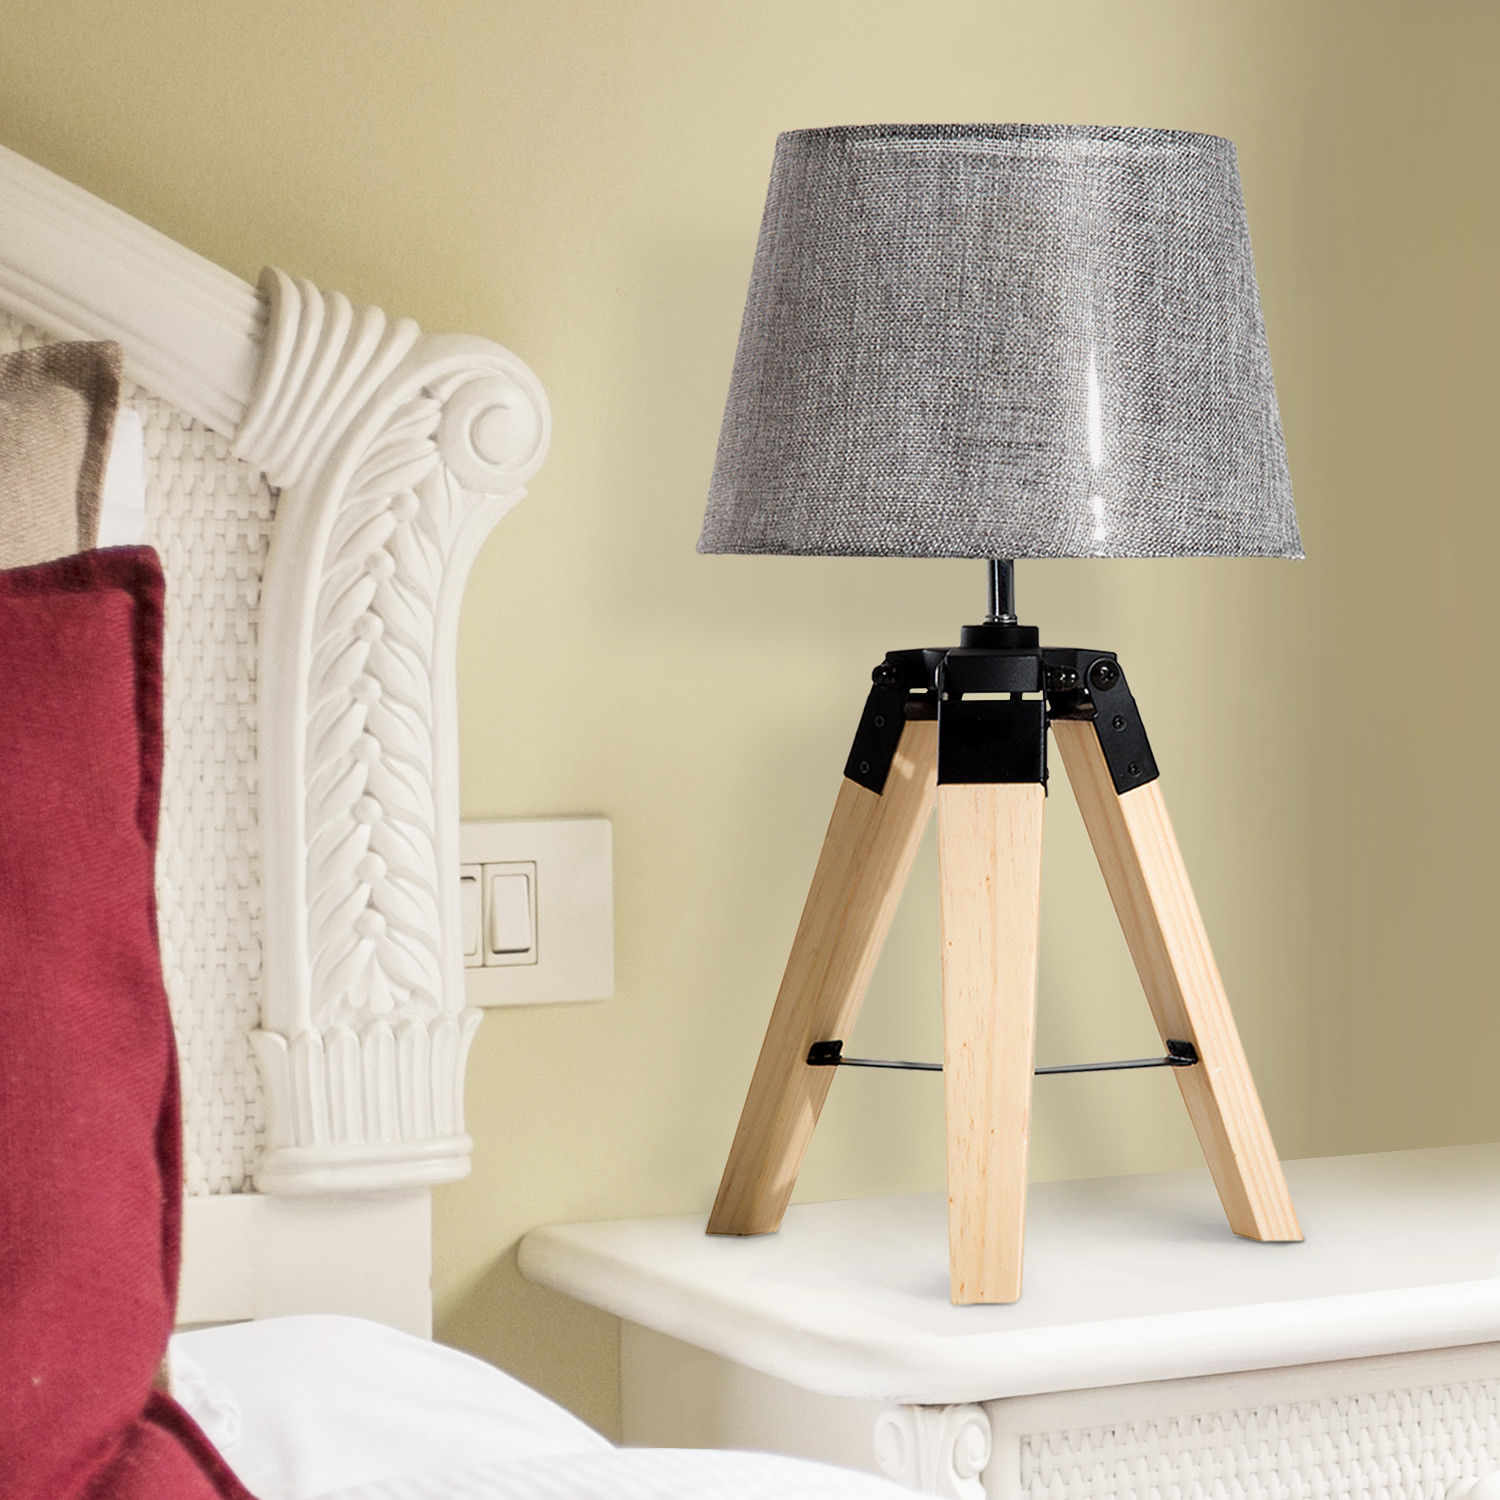 Modern Table Lamp Tripod Wooden Lampshade For Bedroom Bedside Décor 2  Colors; Picture 2 Of 10 ...